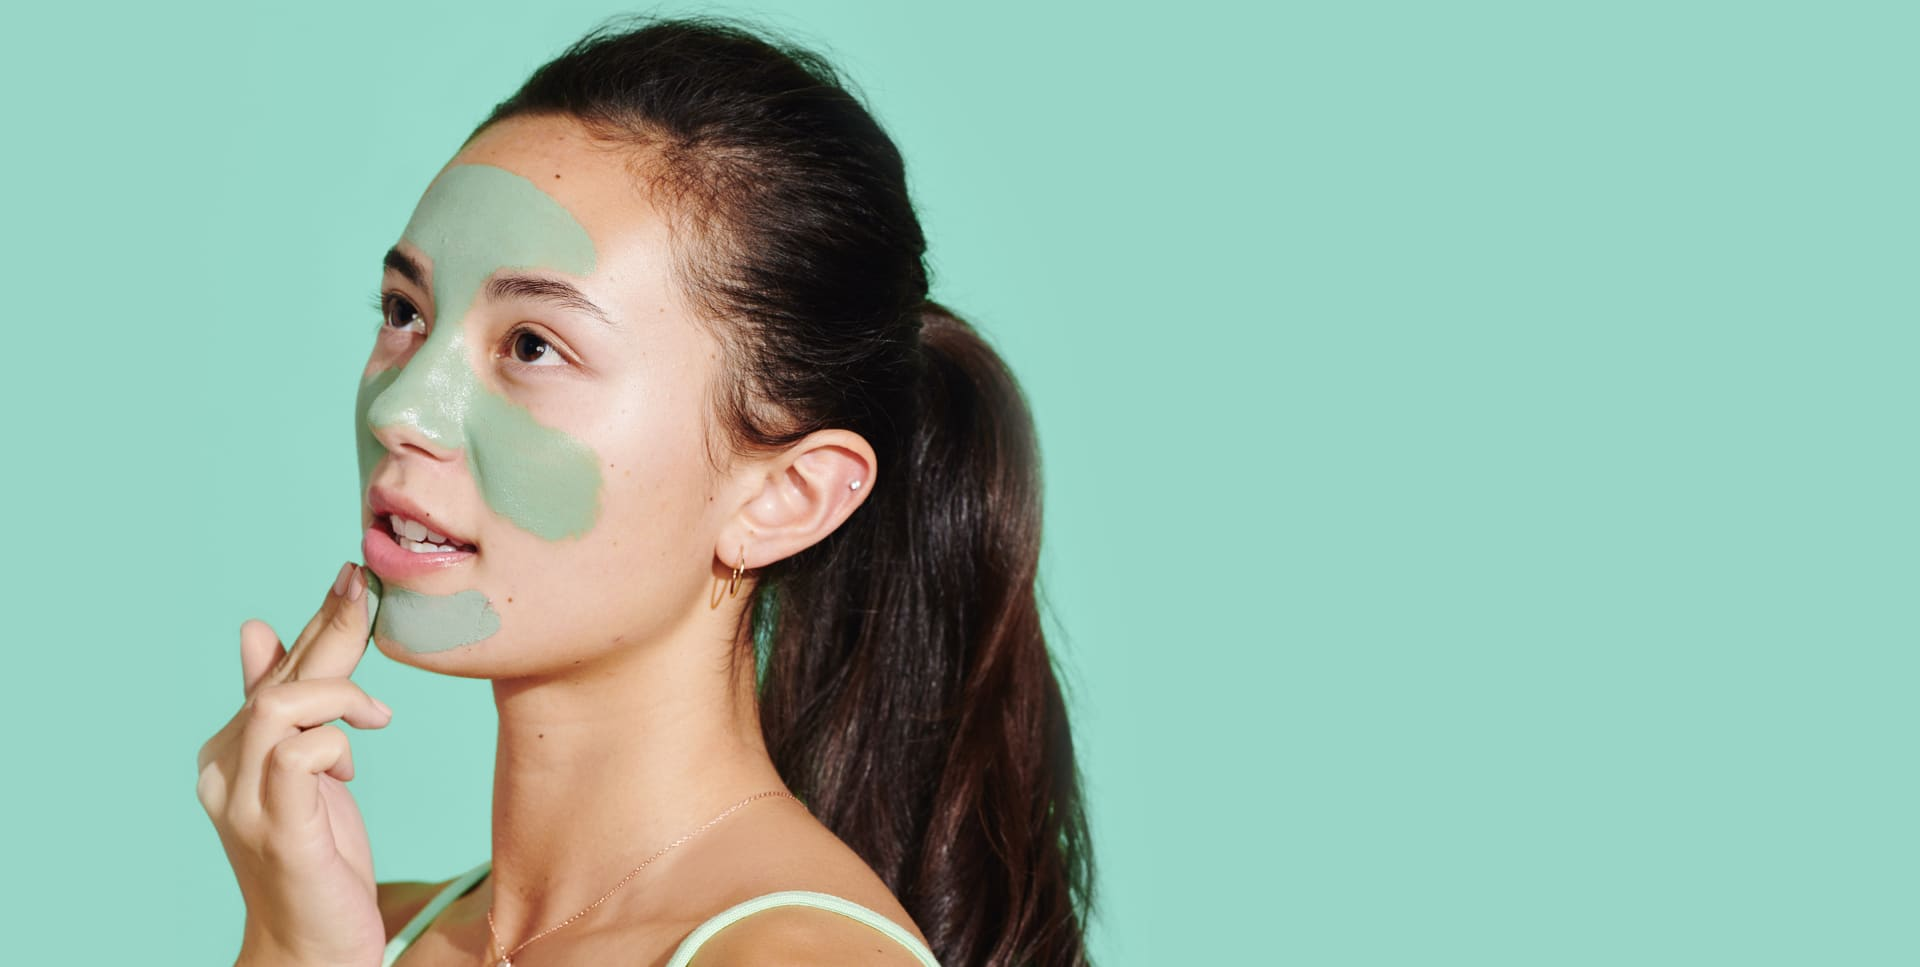 Young woman applies Mint Mud detox mask to her face with her fingers